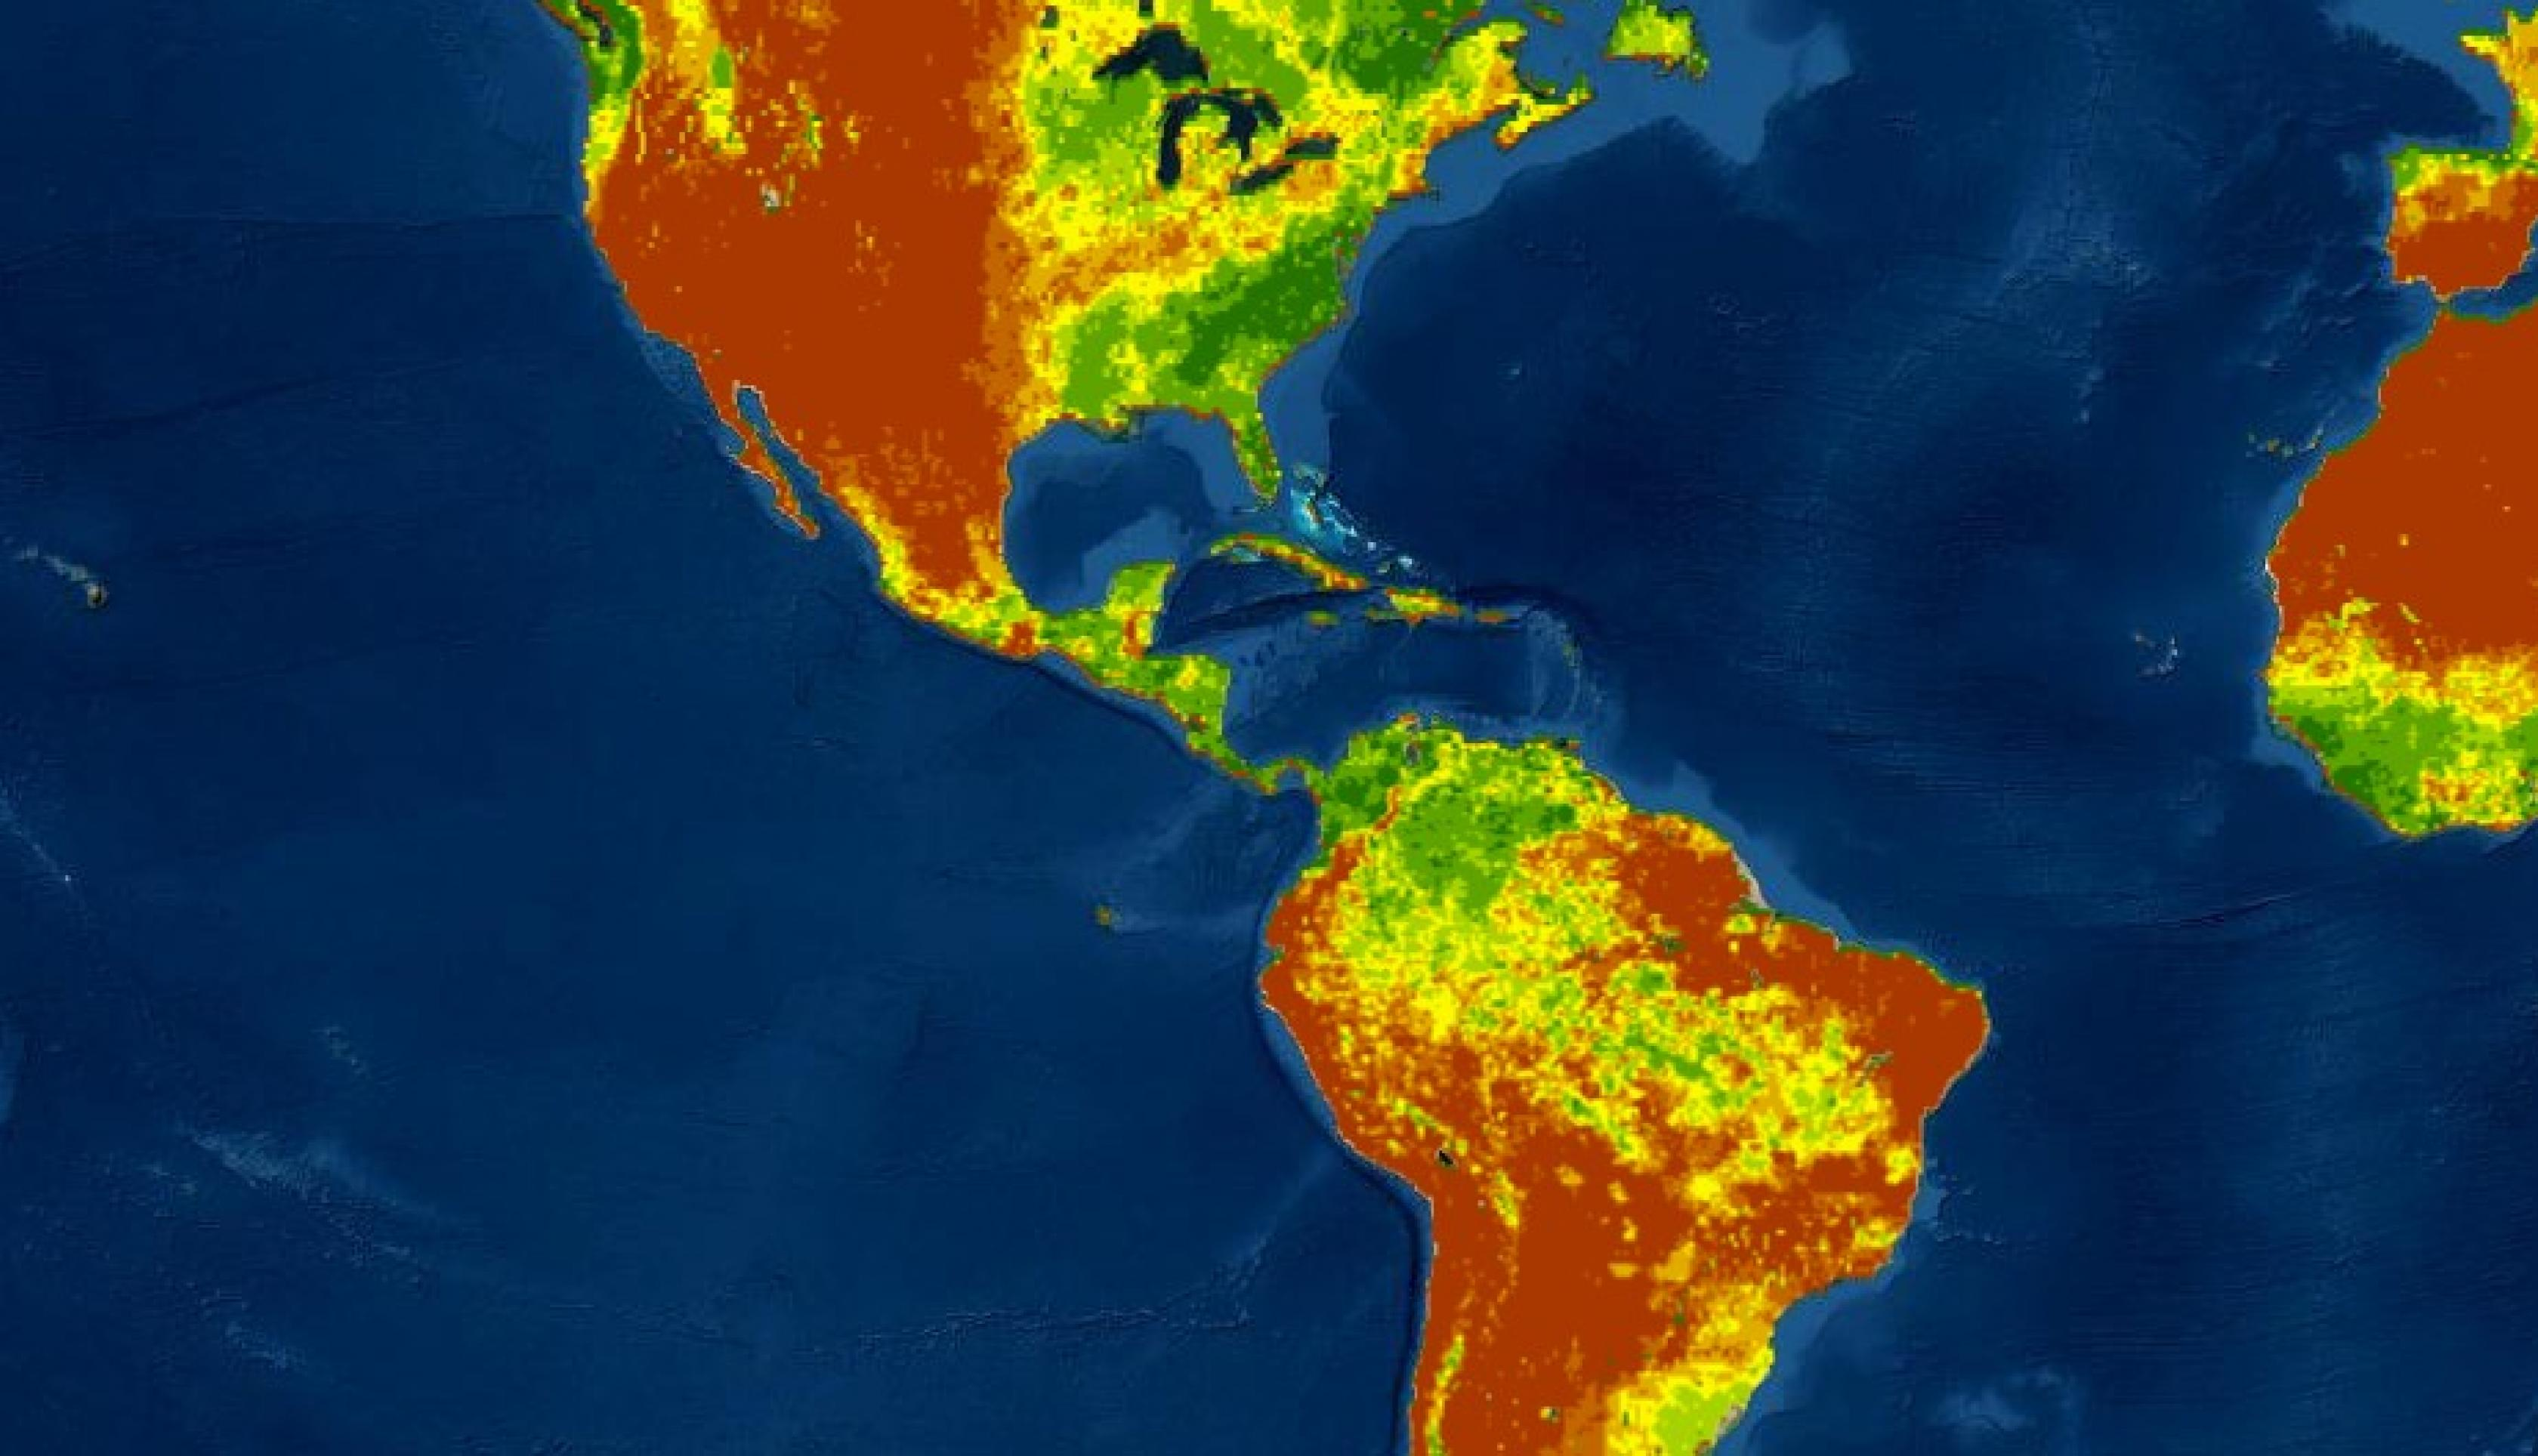 Map of soil moisture for the Americas